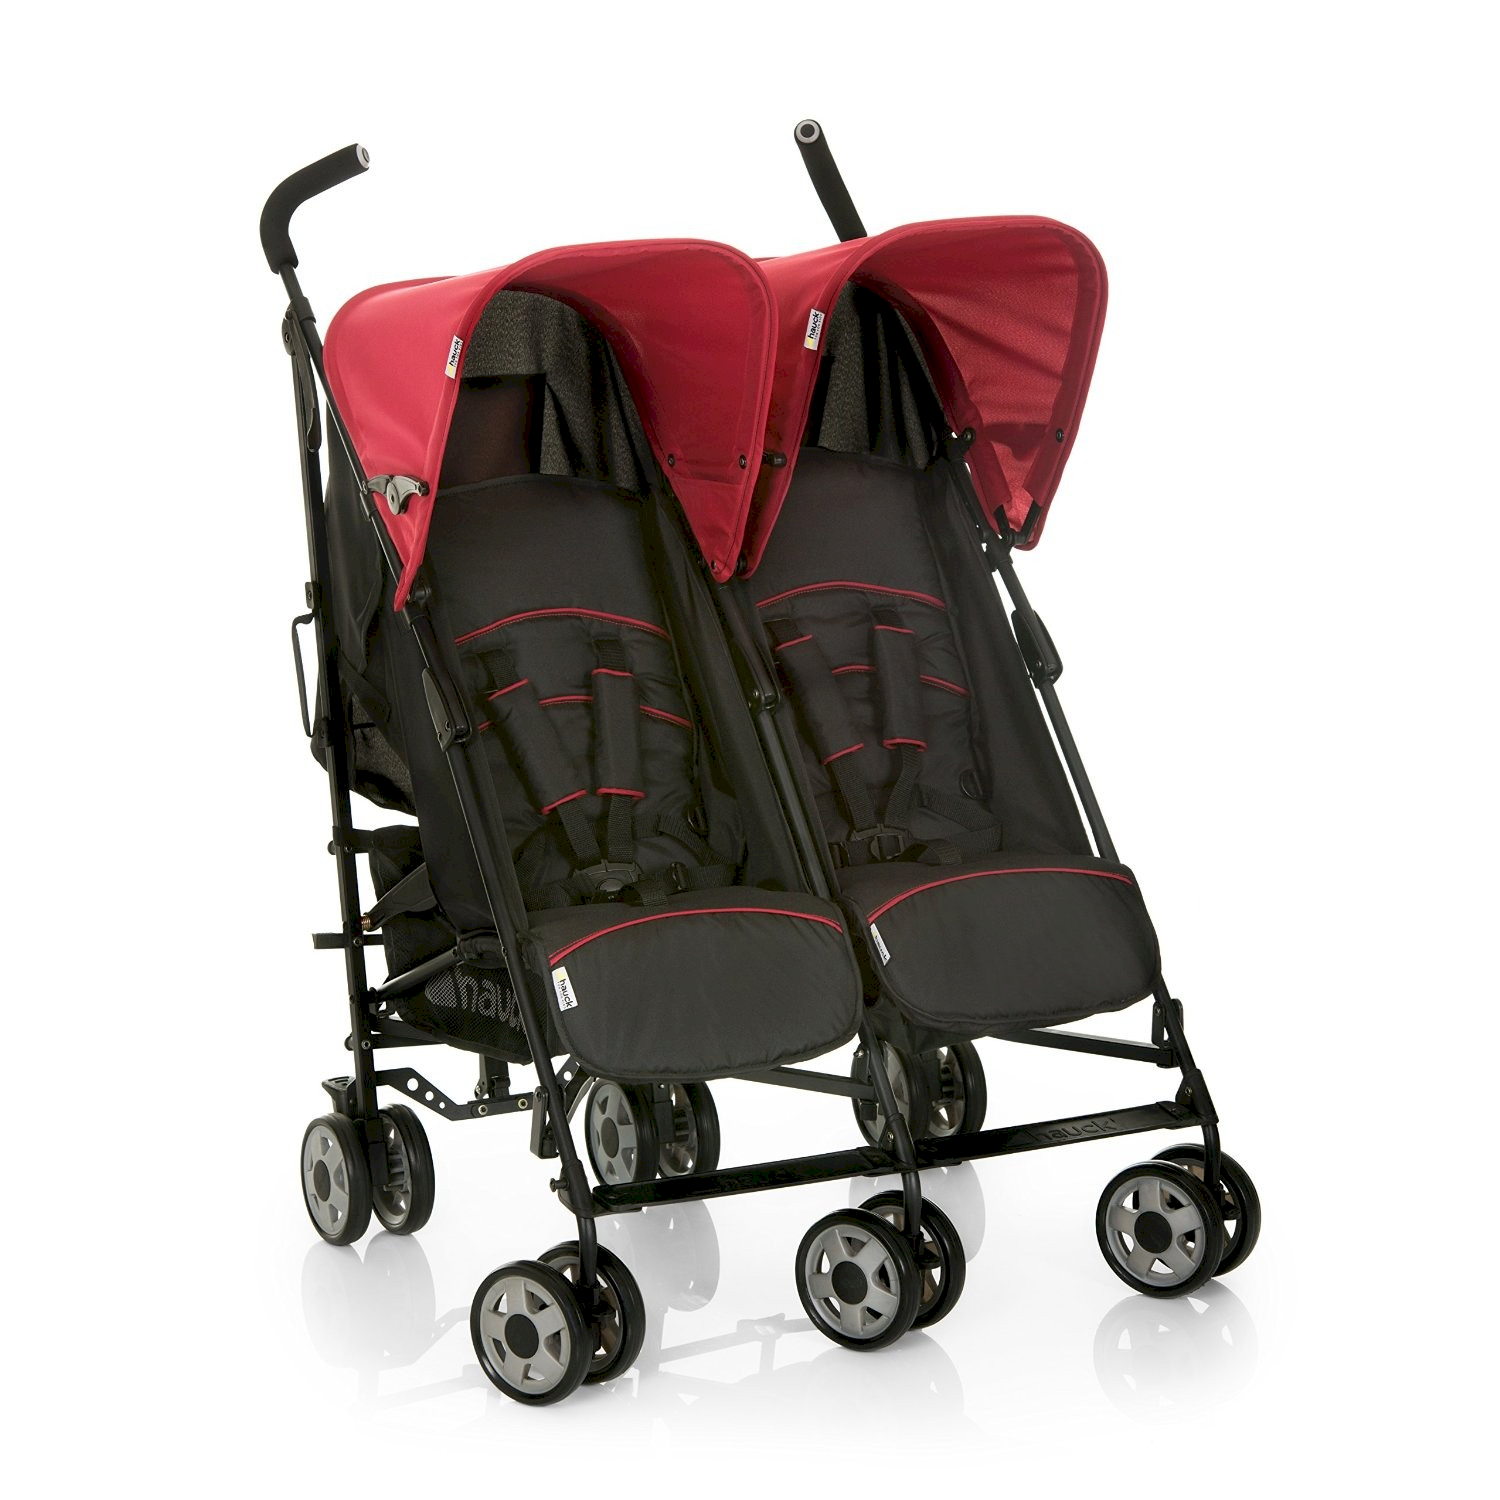 Passeggino Gemellare Hauck Turbo Duo